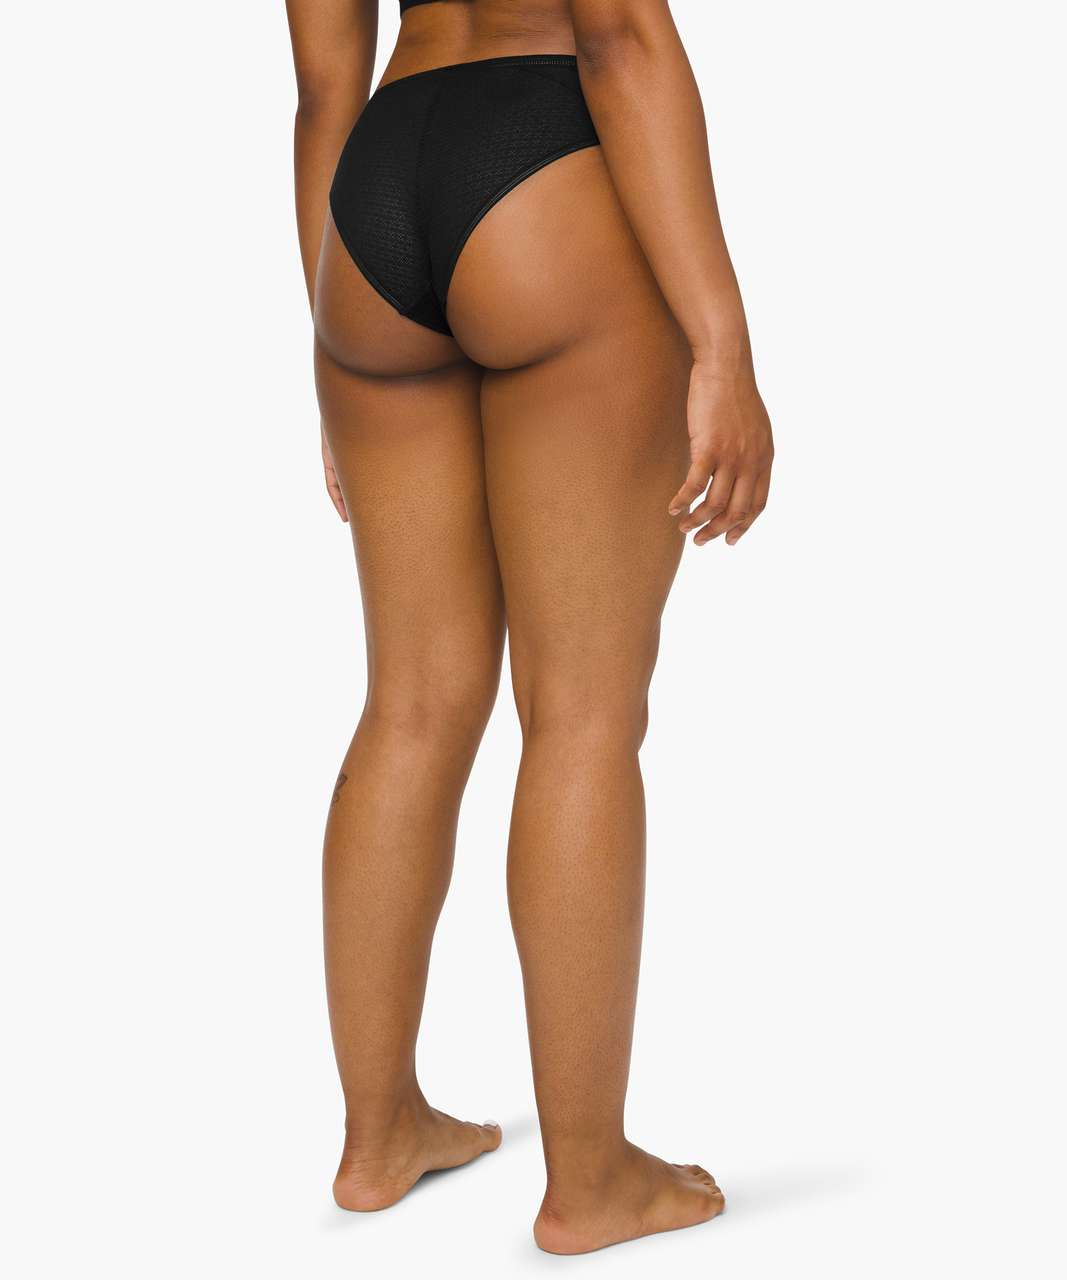 Lululemon Awake to Lace Cheeky Bikini - Black